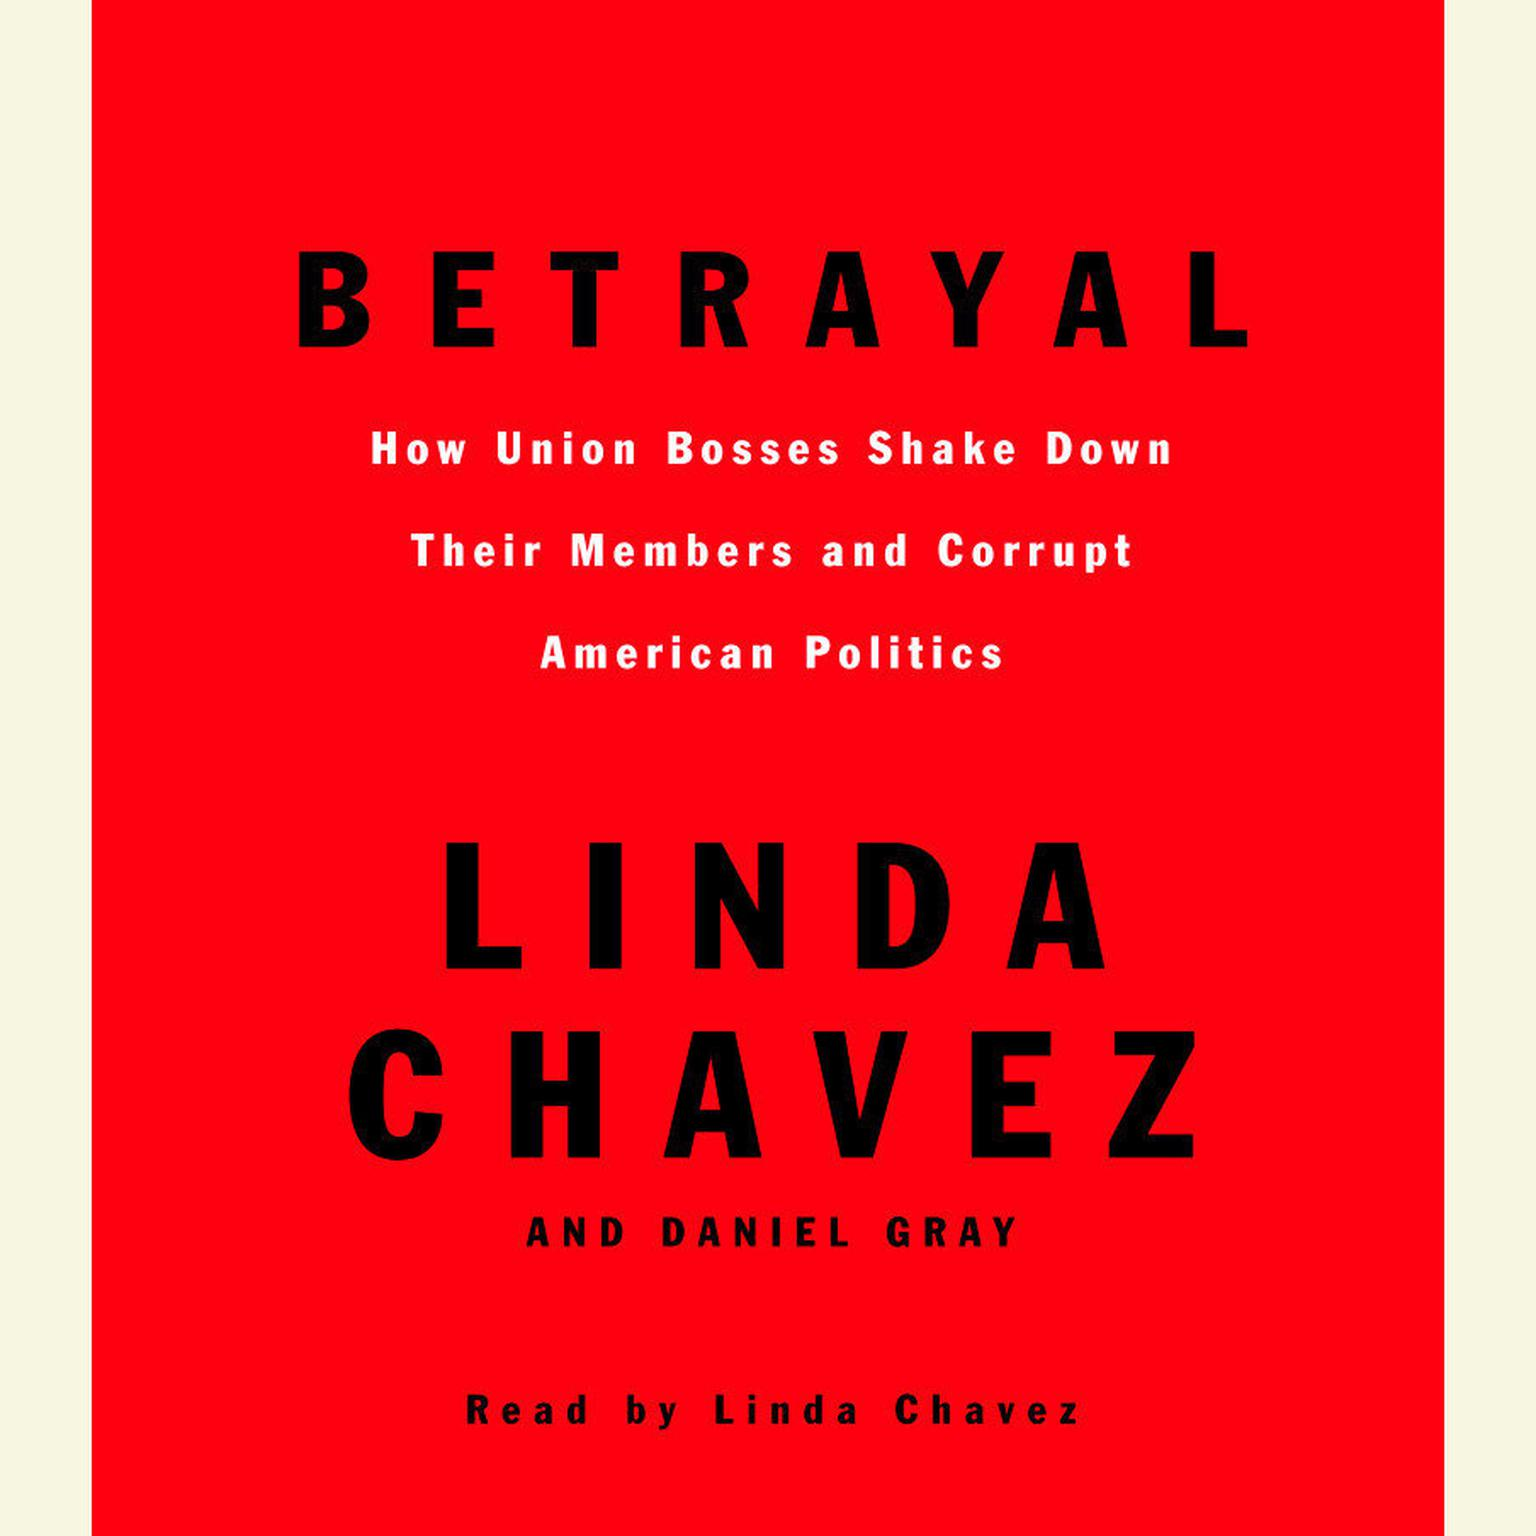 Betrayal (Abridged): How Union Bosses Shake Down Their Members and Corrupt American Politics Audiobook, by Linda Chavez